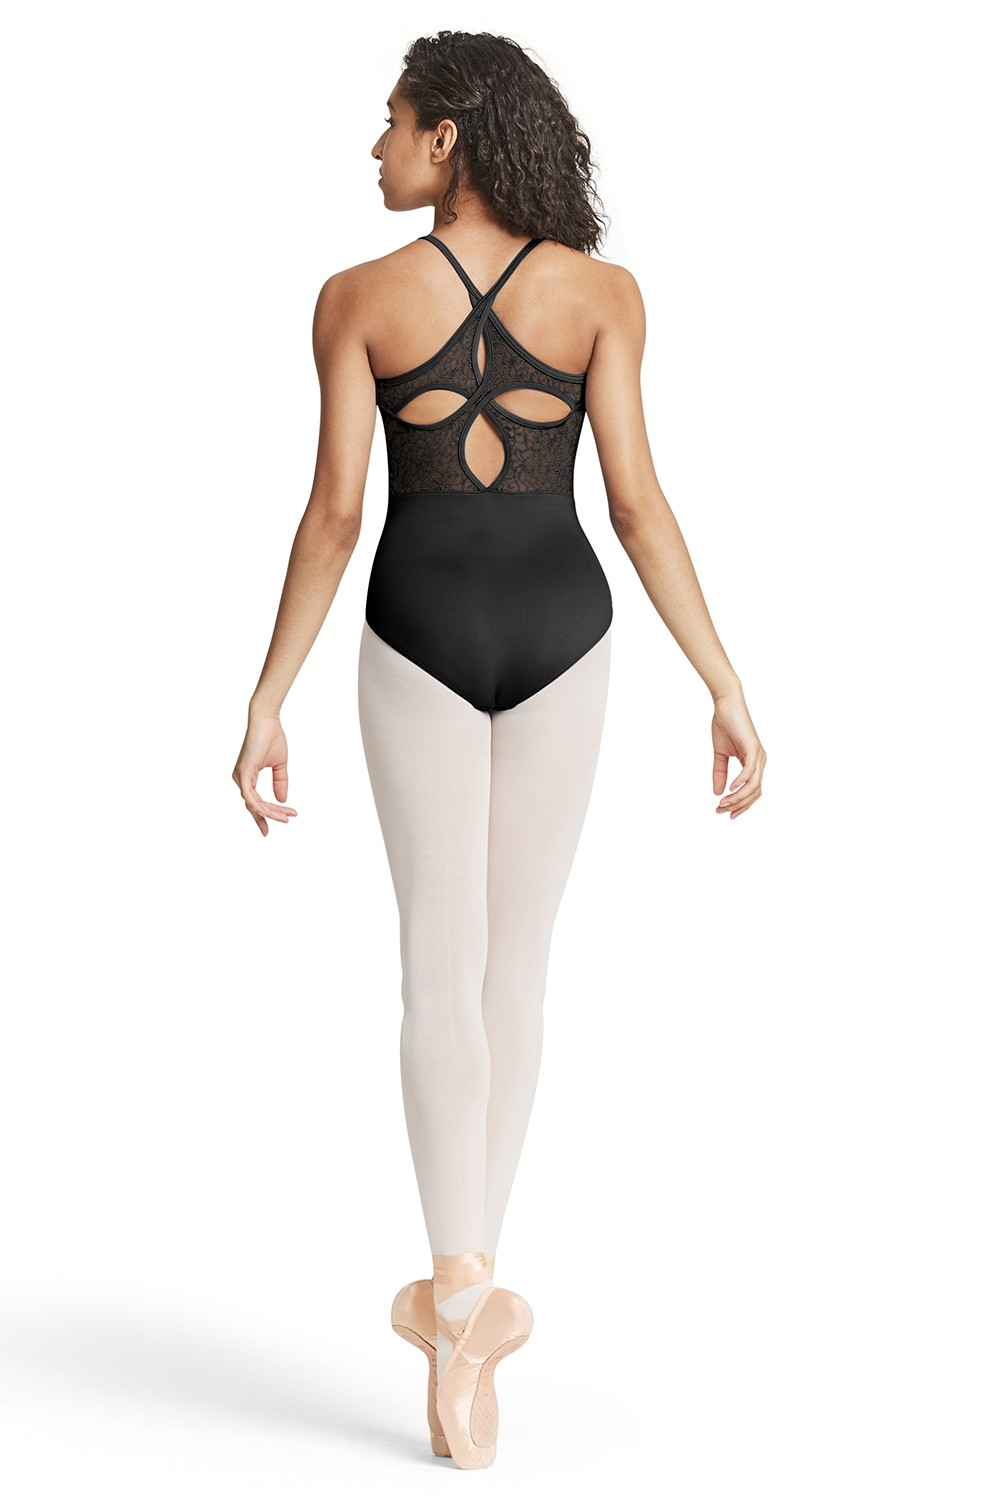 Open Keyhole Back Camisole Leotard Women's Dance Leotards